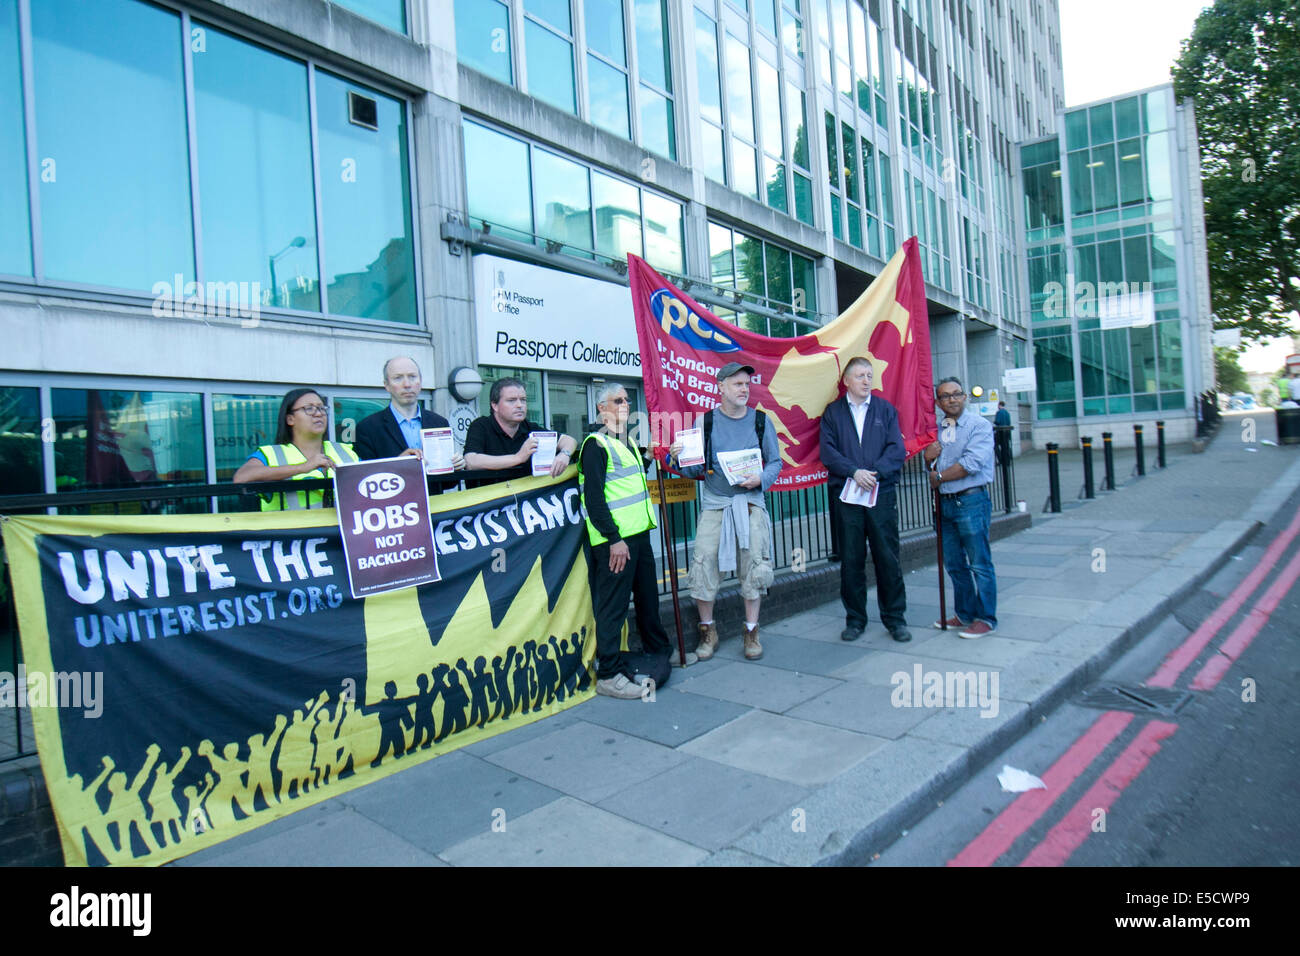 London, UK. 28th July 2014. Staff staged a one day walk out at the UK passport office over pay cuts, shortages and - Stock Image